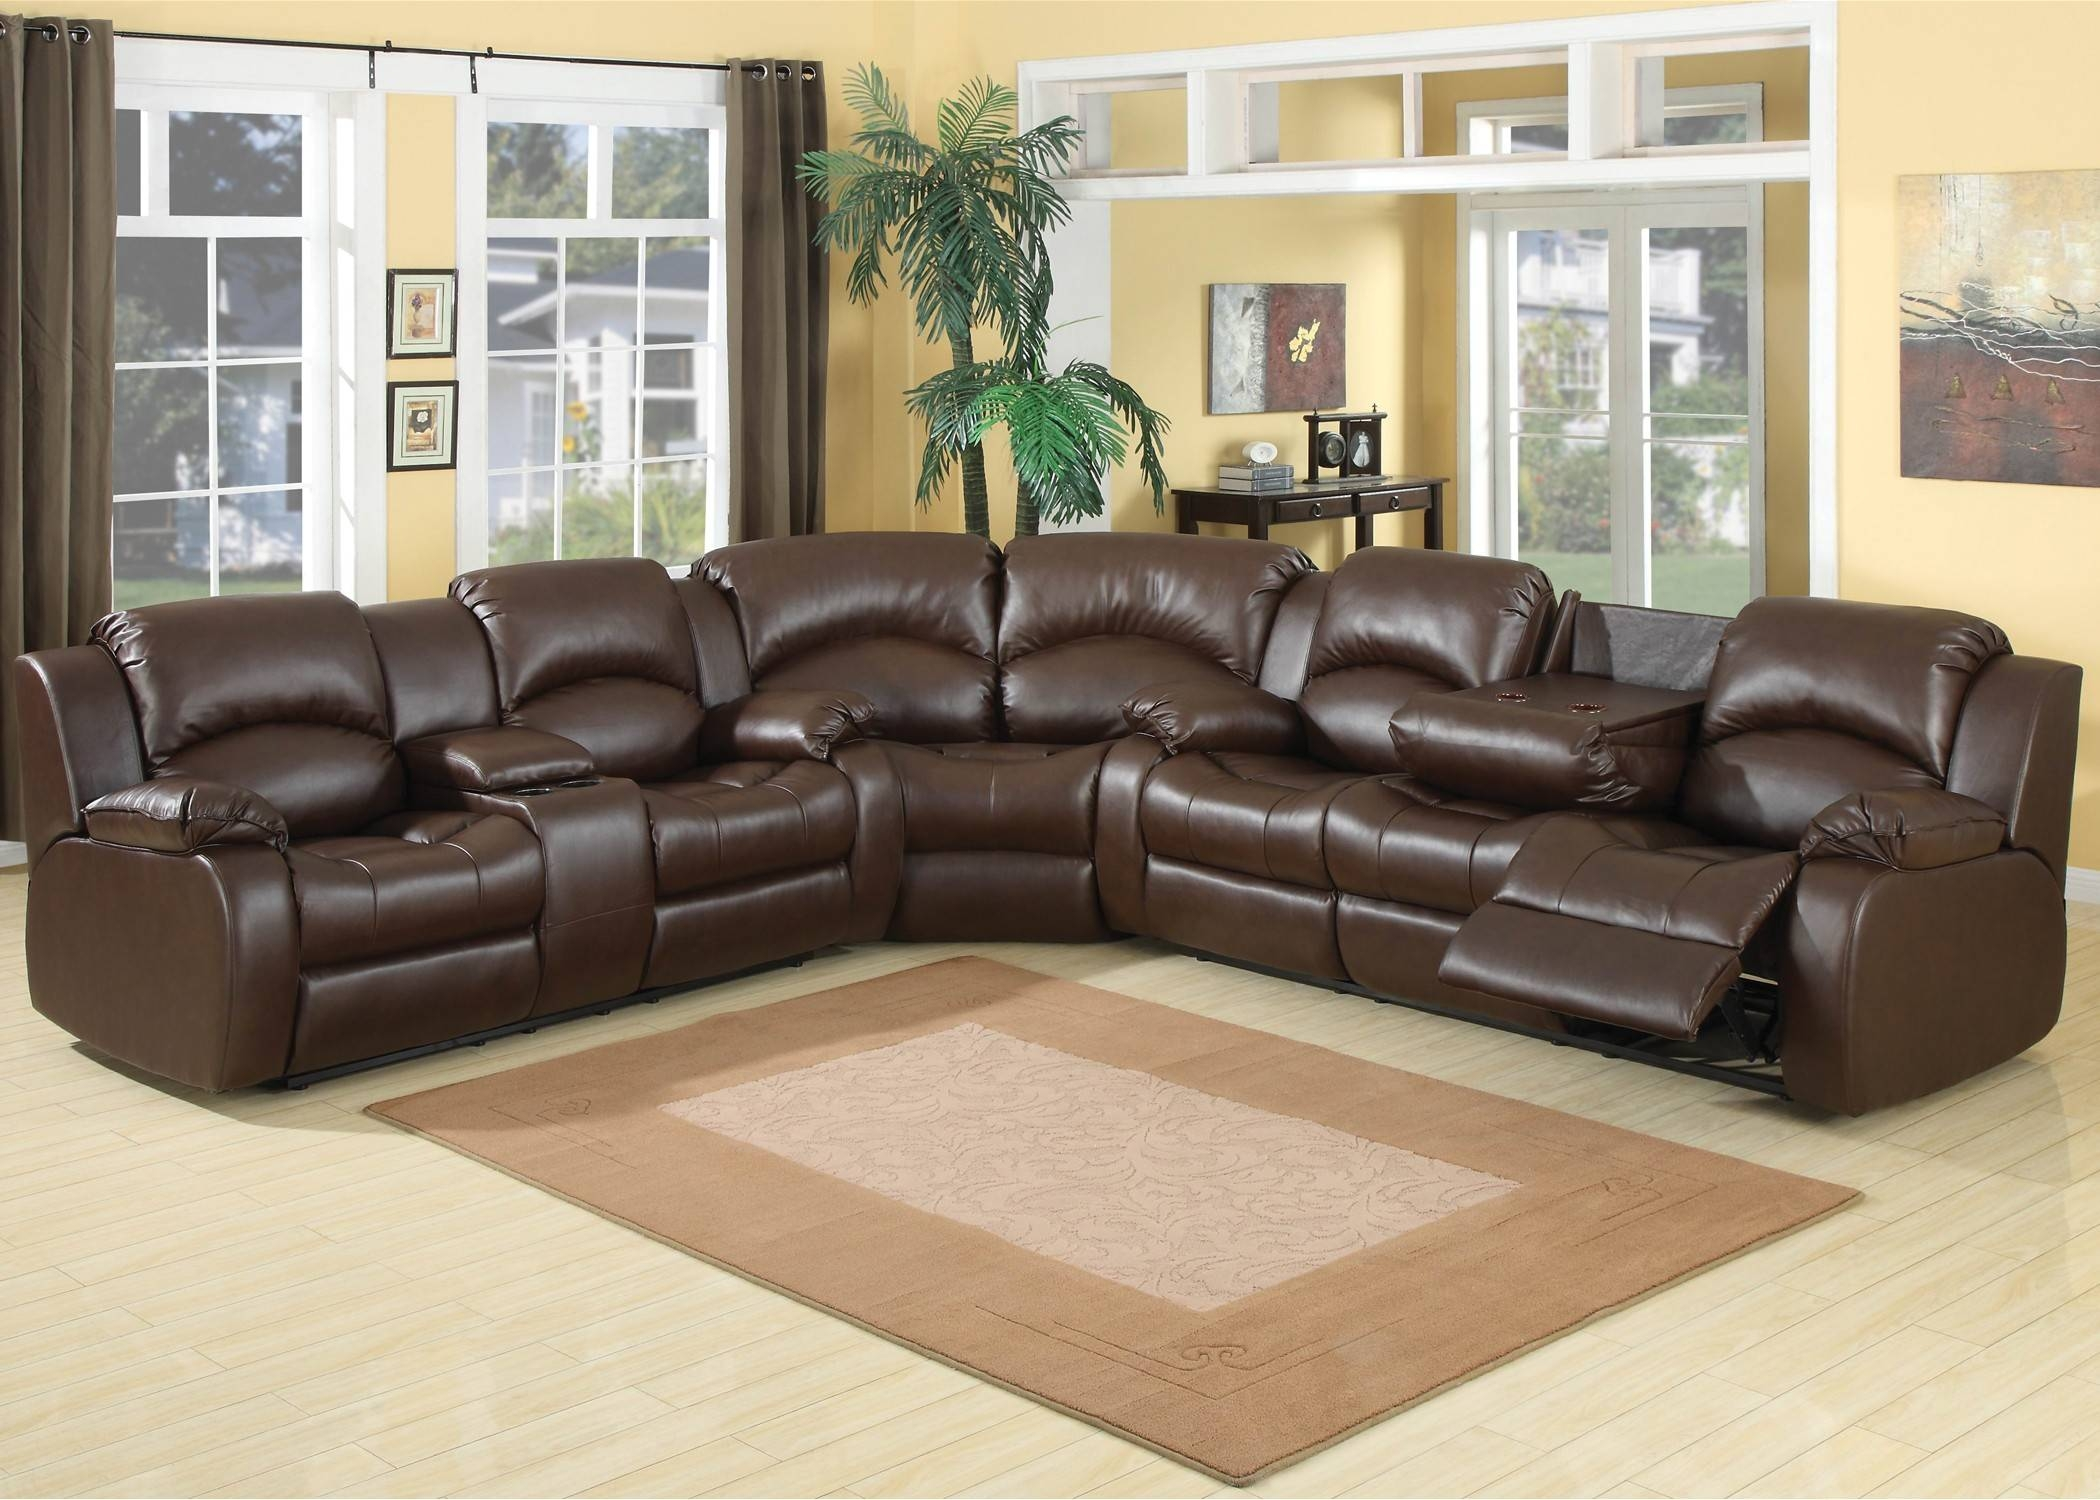 30 Collection of 6 Piece Leather Sectional Sofa